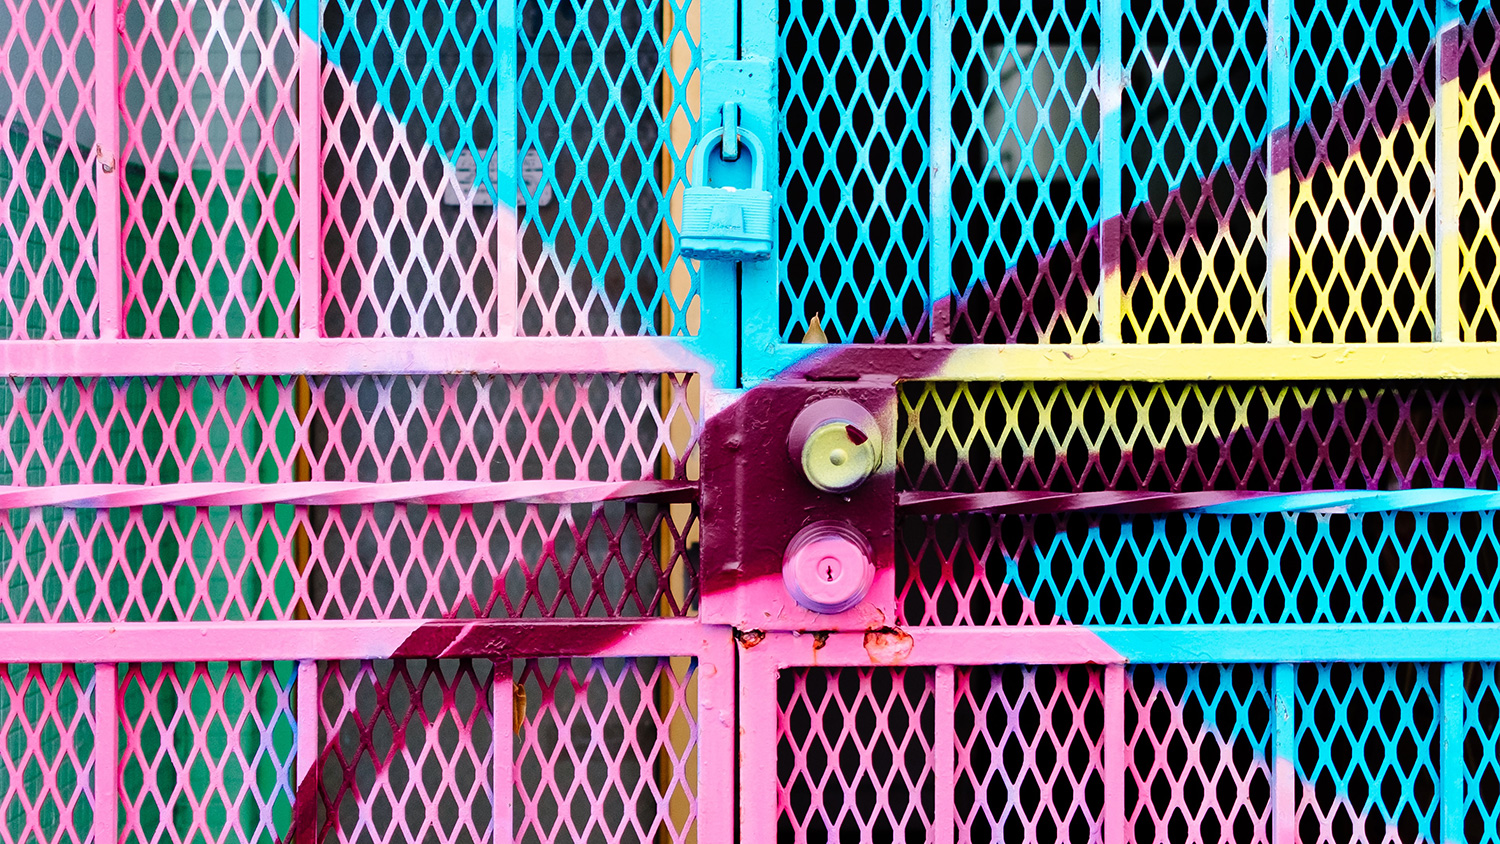 A brightly painted gate with a padlock and a door lock